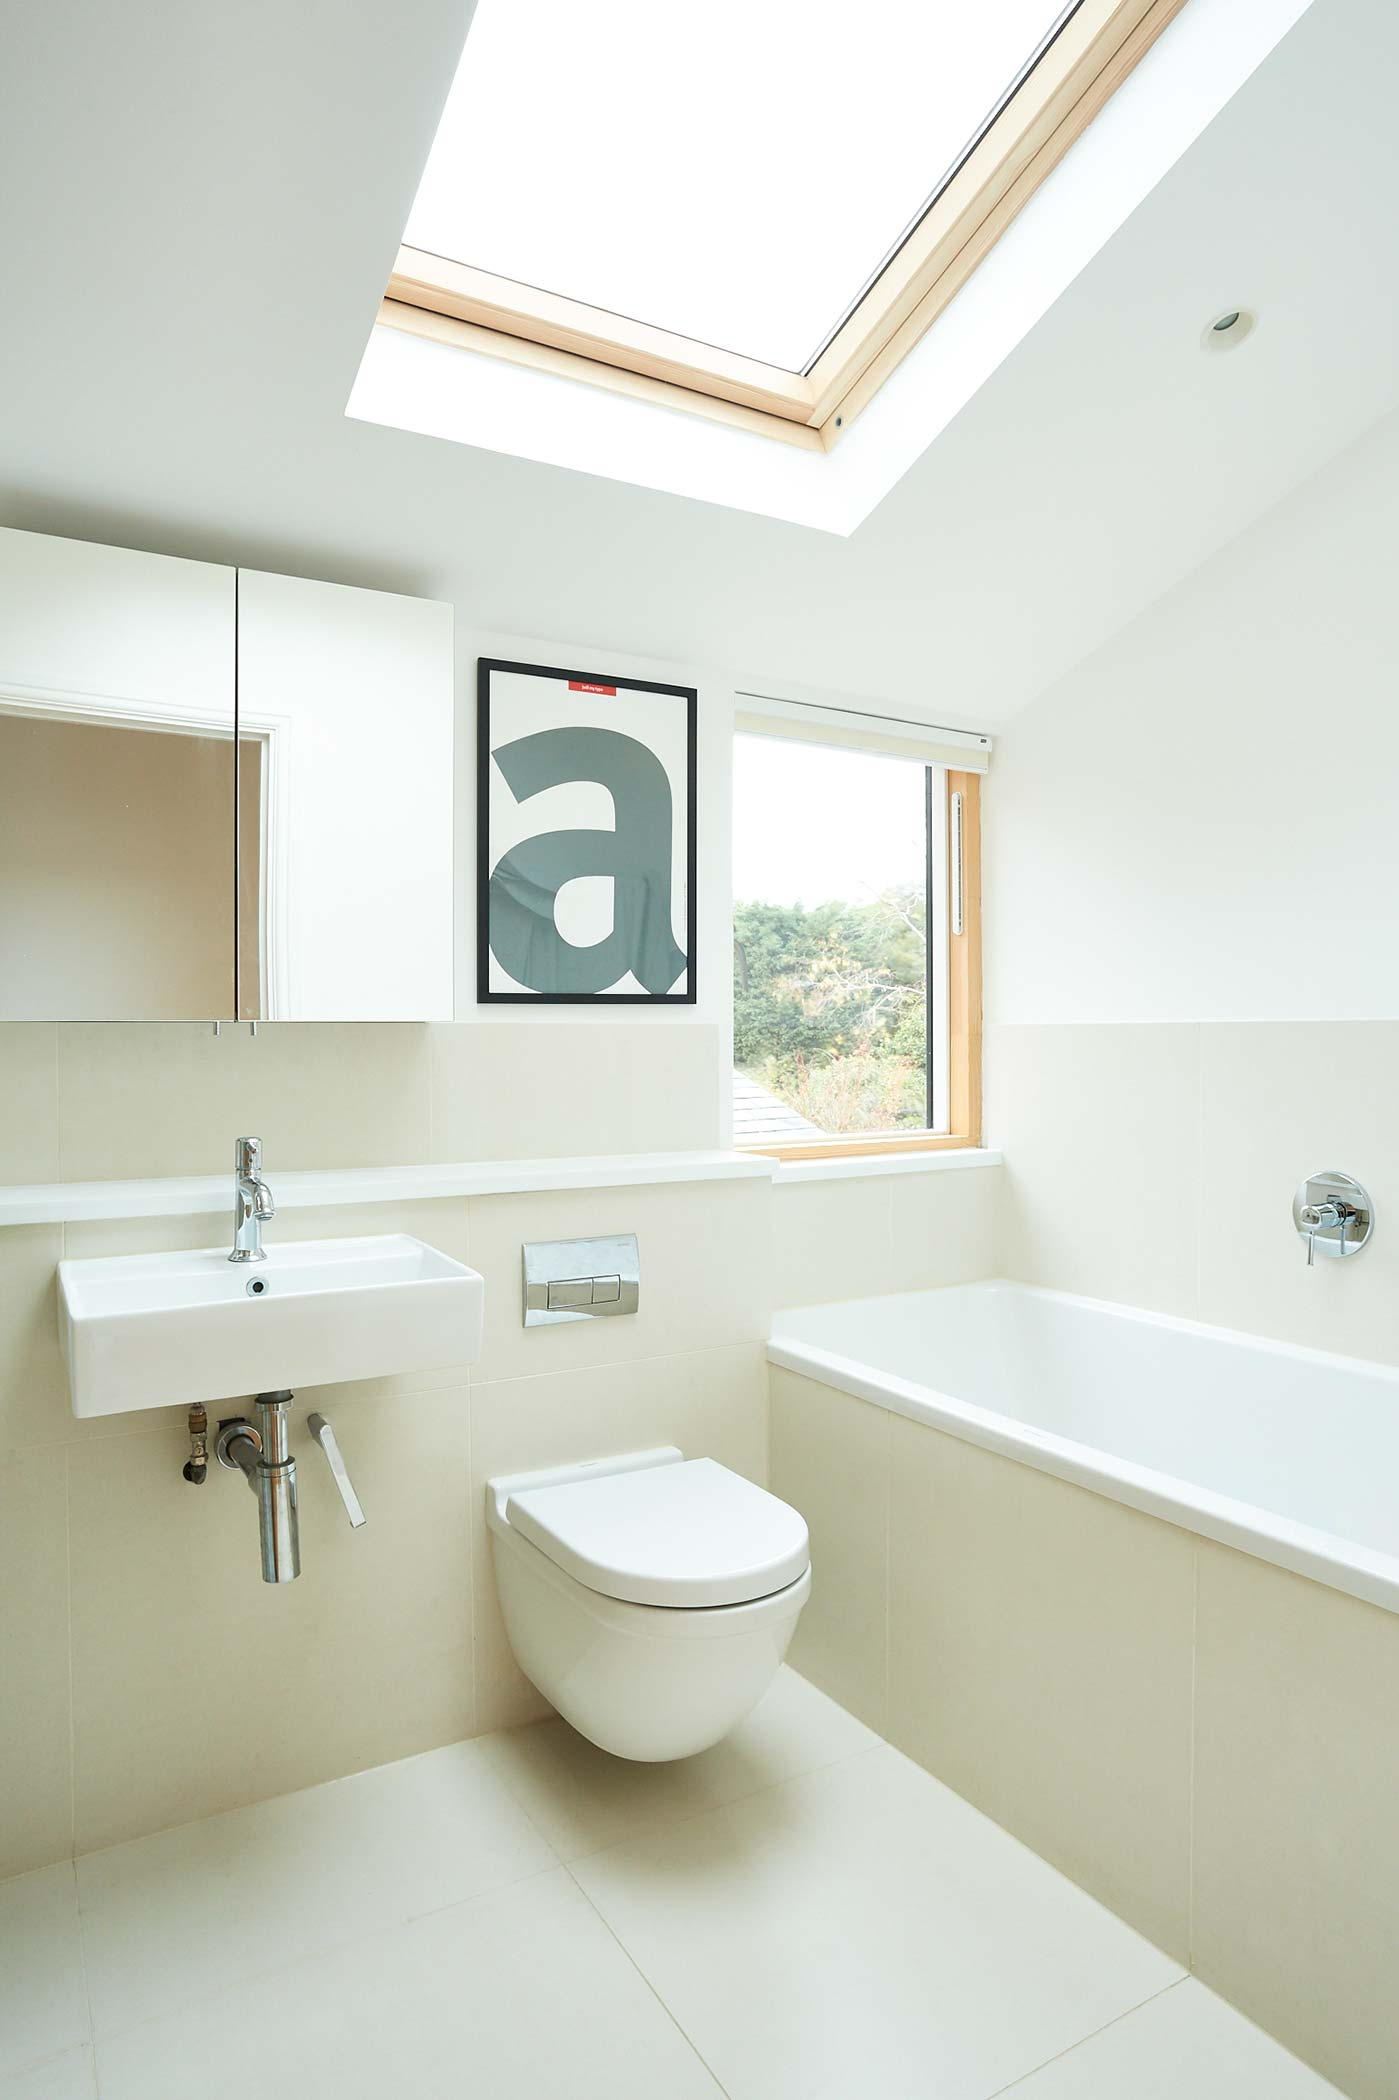 Gayhurst Road Family Bathroom W Vaulted Ceiling Idealcombi Uk